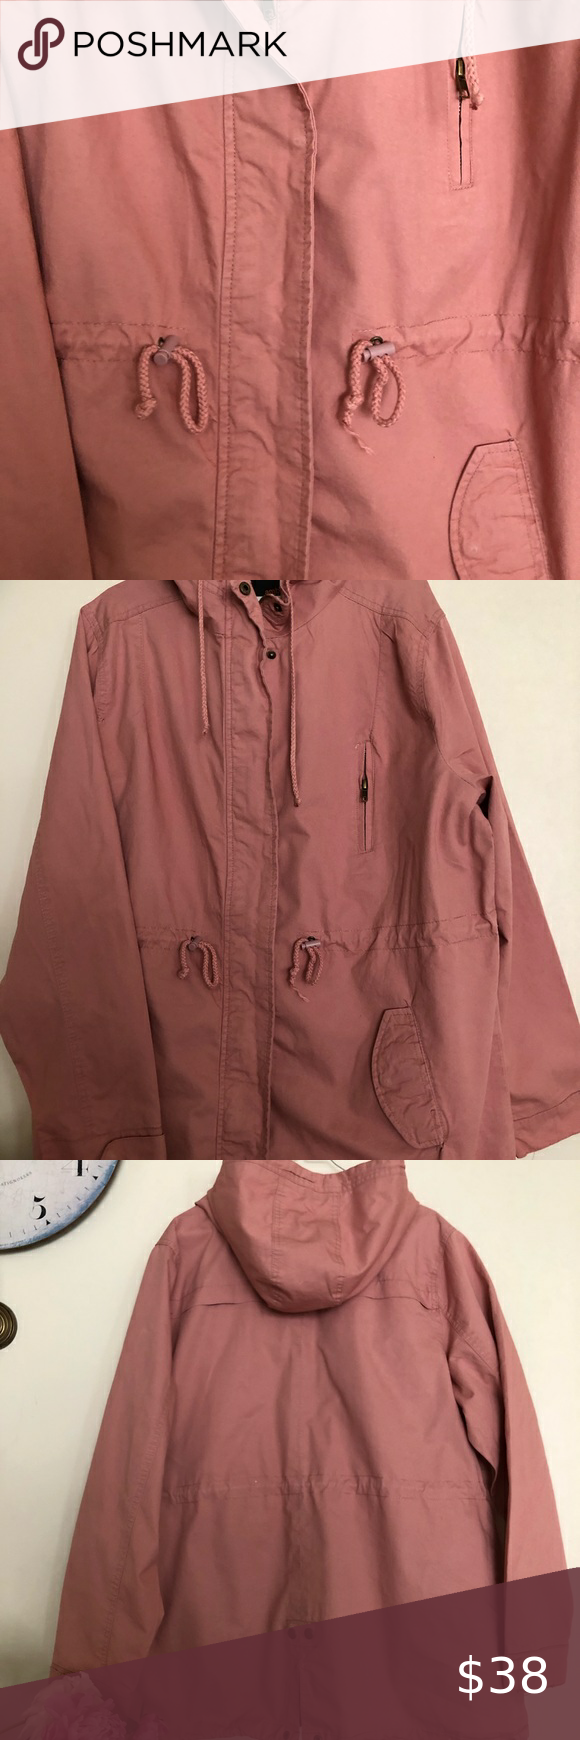 Ambiance Lightweight Jacket Ambiance Outerwear 3x Great Jacket Zip Snap Front Closer Hood With Drawstring An Lightweight Jacket Jackets Clothes Design [ 1740 x 580 Pixel ]